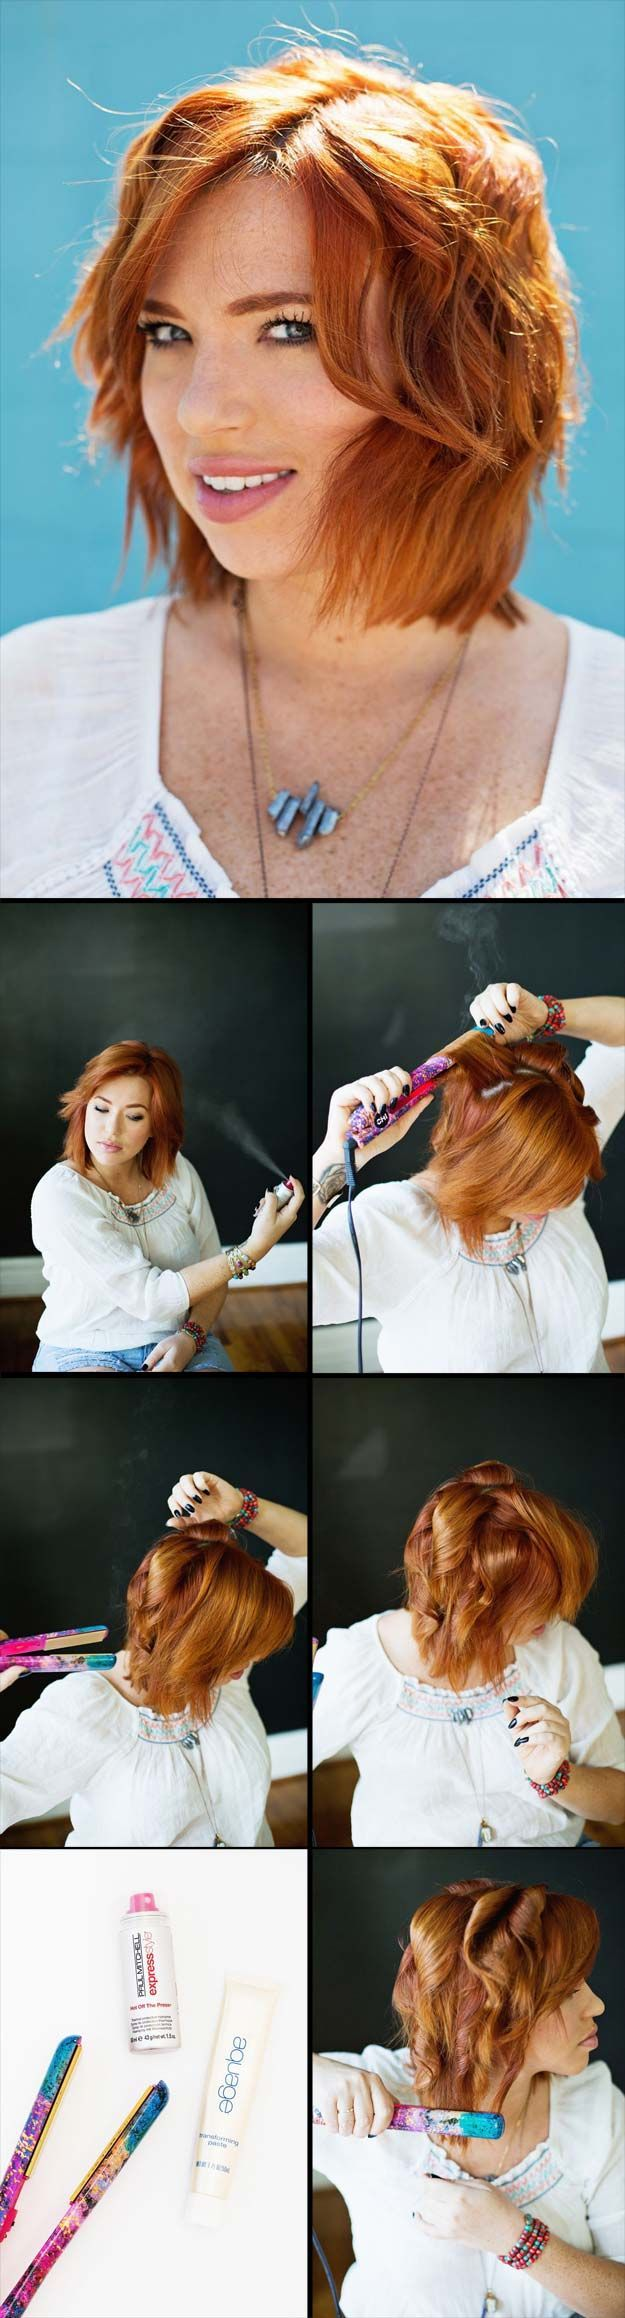 Best Hairstyles For Your 30s -How to Create Beachy Waves- Hair Dos And Don'ts ...